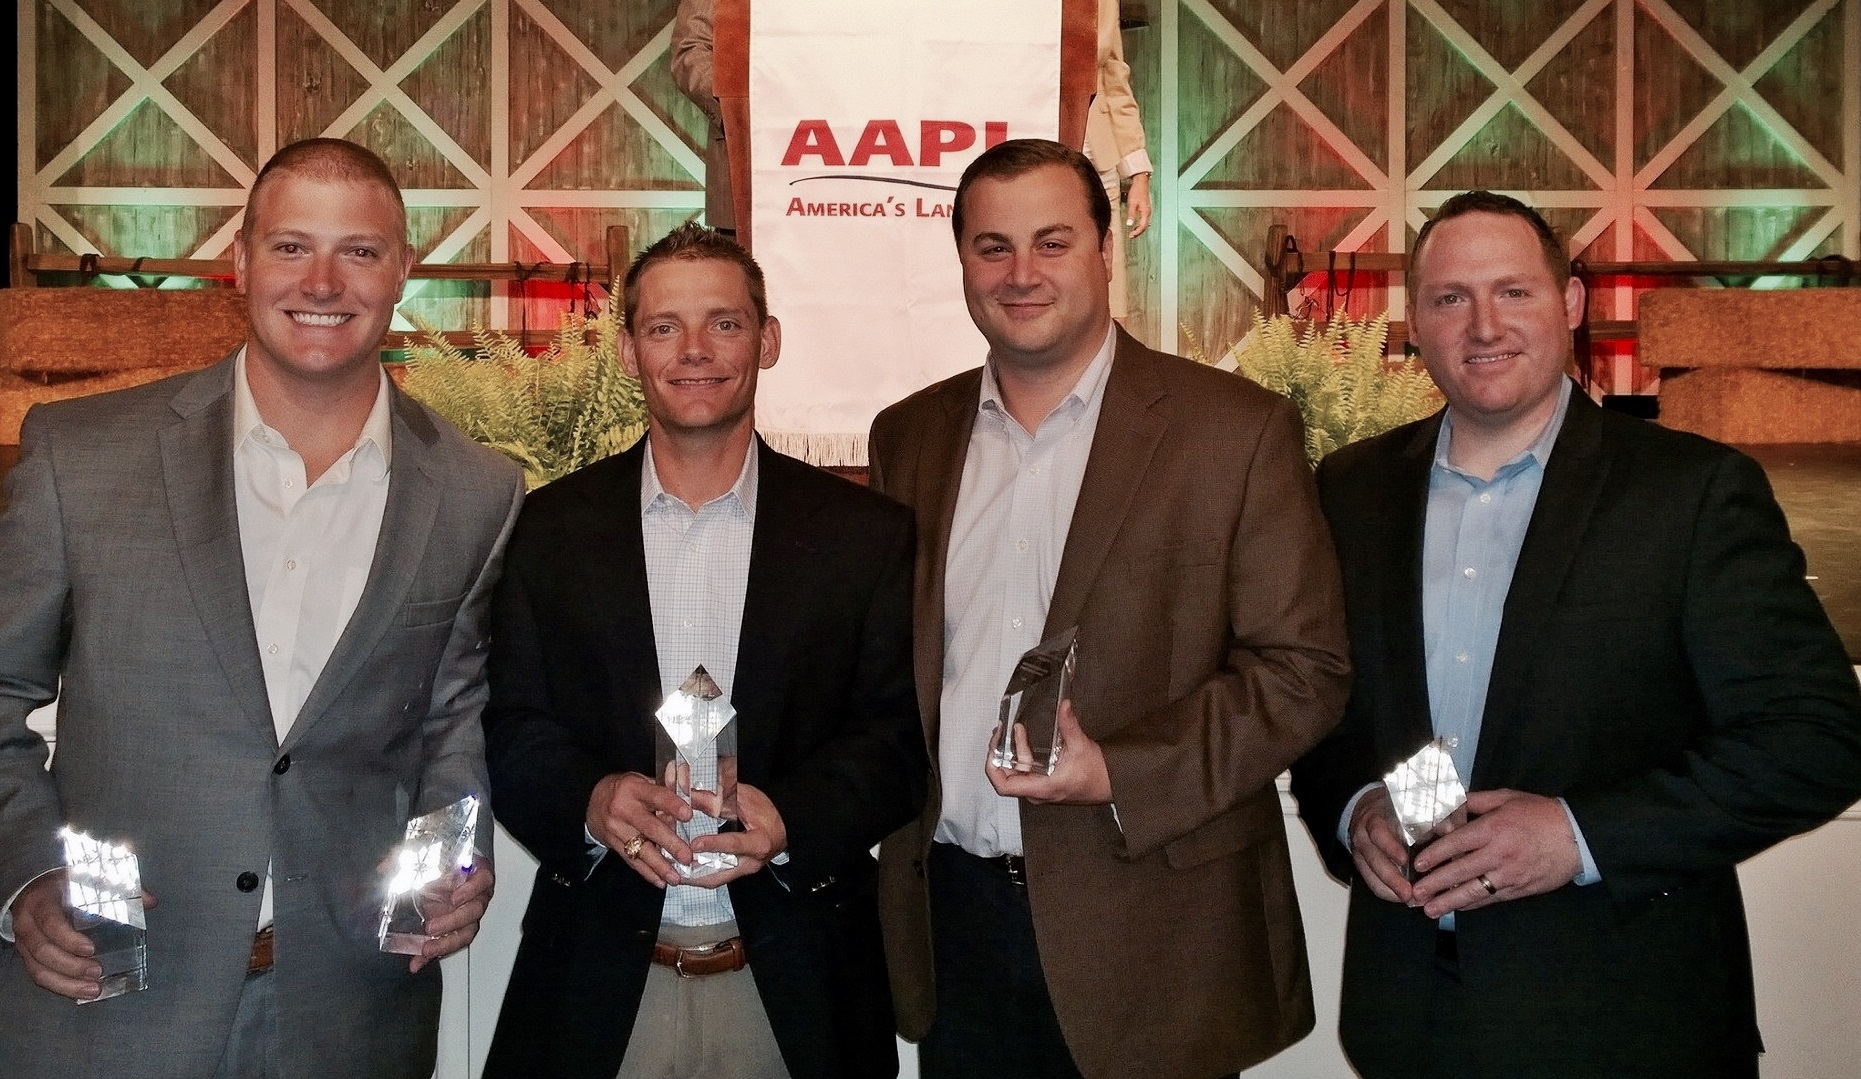 nhapl aapl awards ceremony national convention nashville 2015